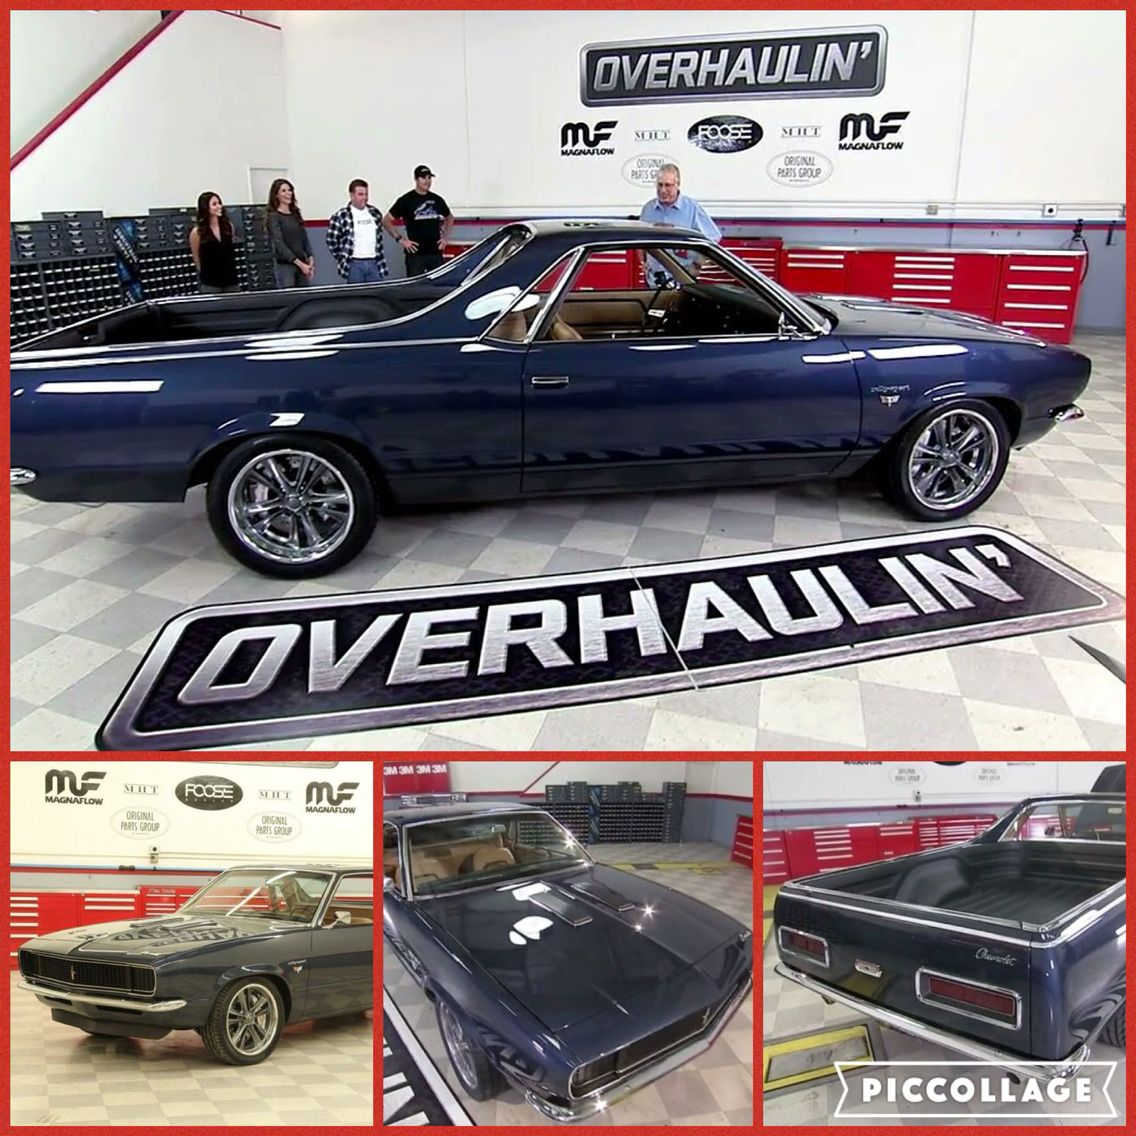 82 El Camino Creation By Chip Foose From Overhaulin Tv Show 67